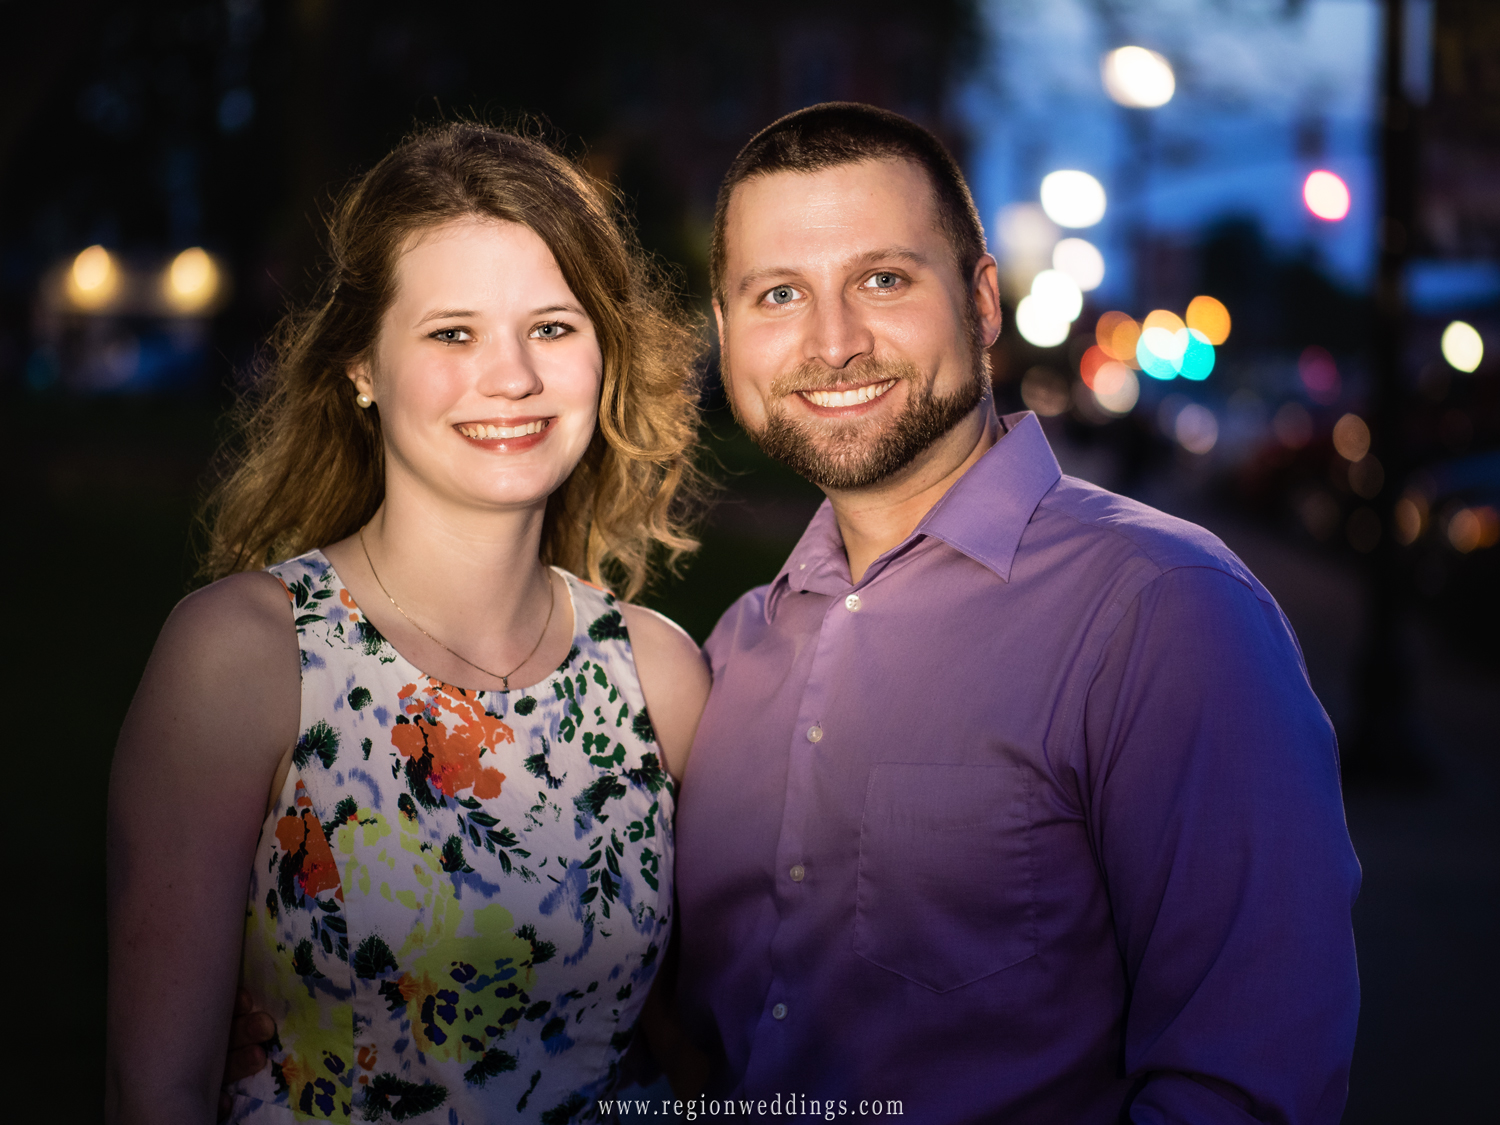 A couple enjoys the night life in downtown Crown Point.